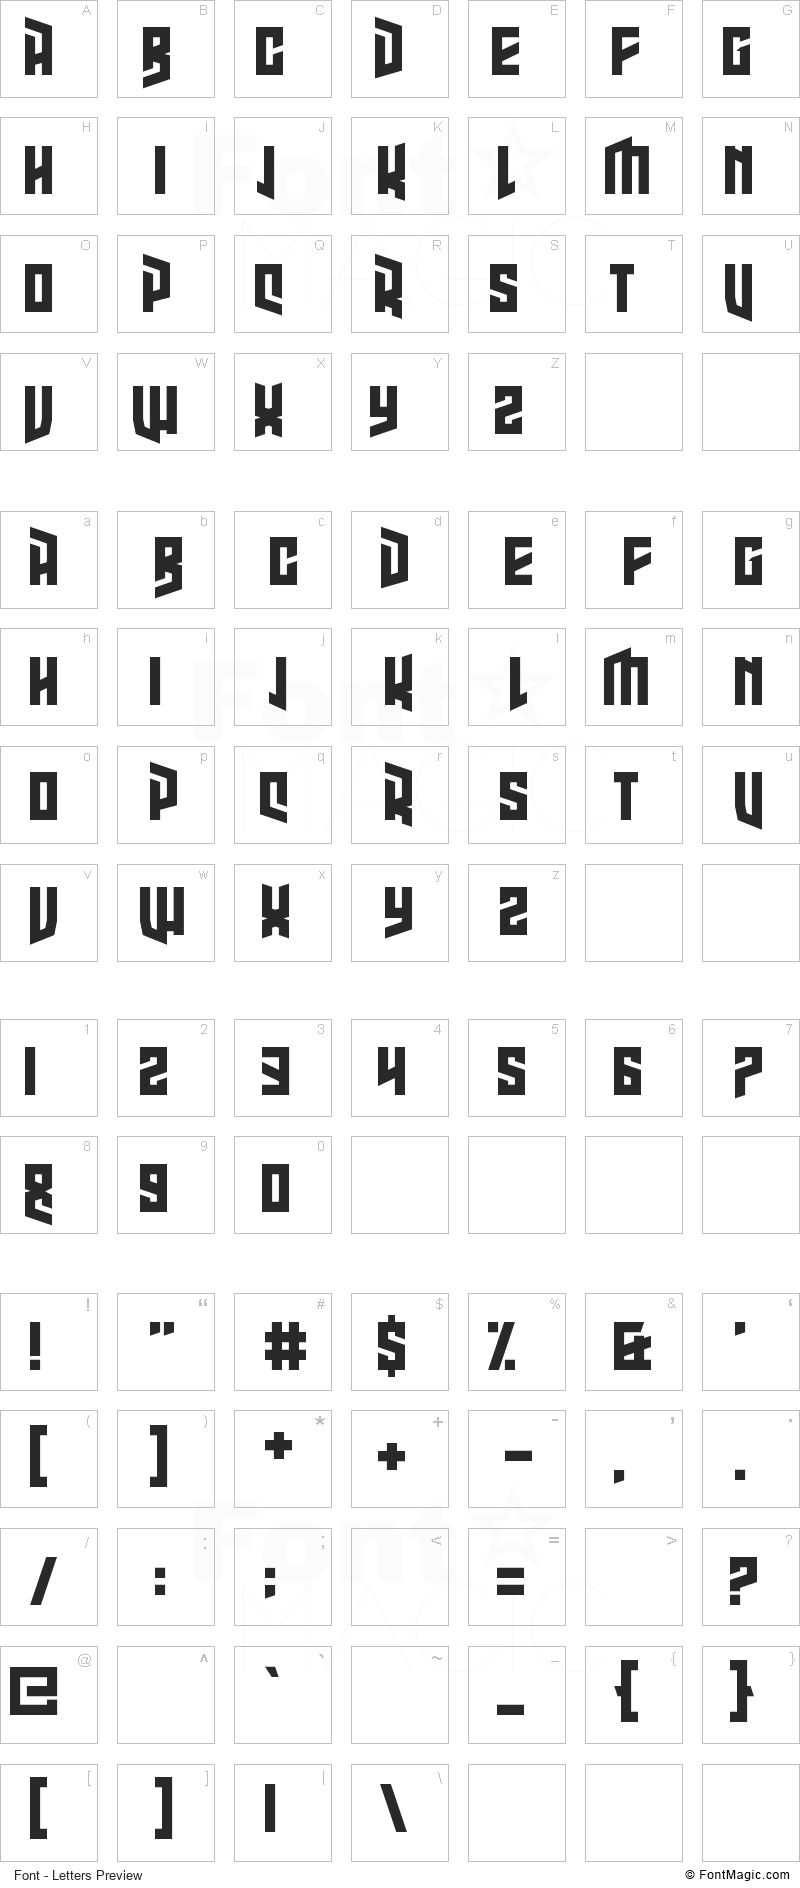 High Jinks Font - All Latters Preview Chart